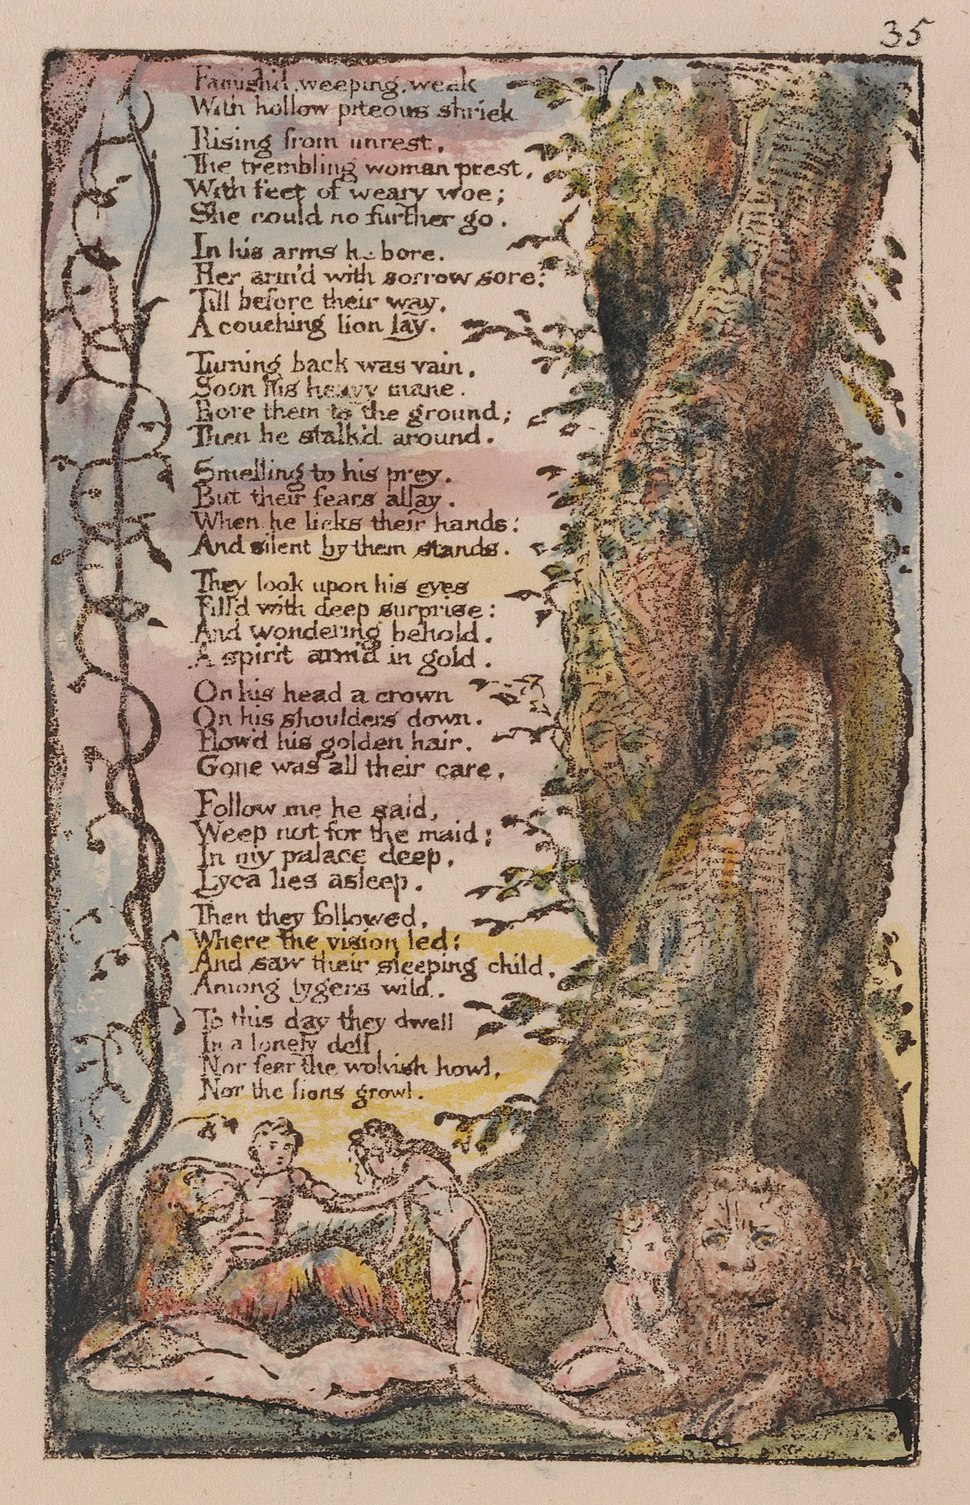 William Blake - Songs of Innocence and of Experience, Plate 35, %22The Little Girl Found%22 (Bentley 36) - Google Art Project (cropped)